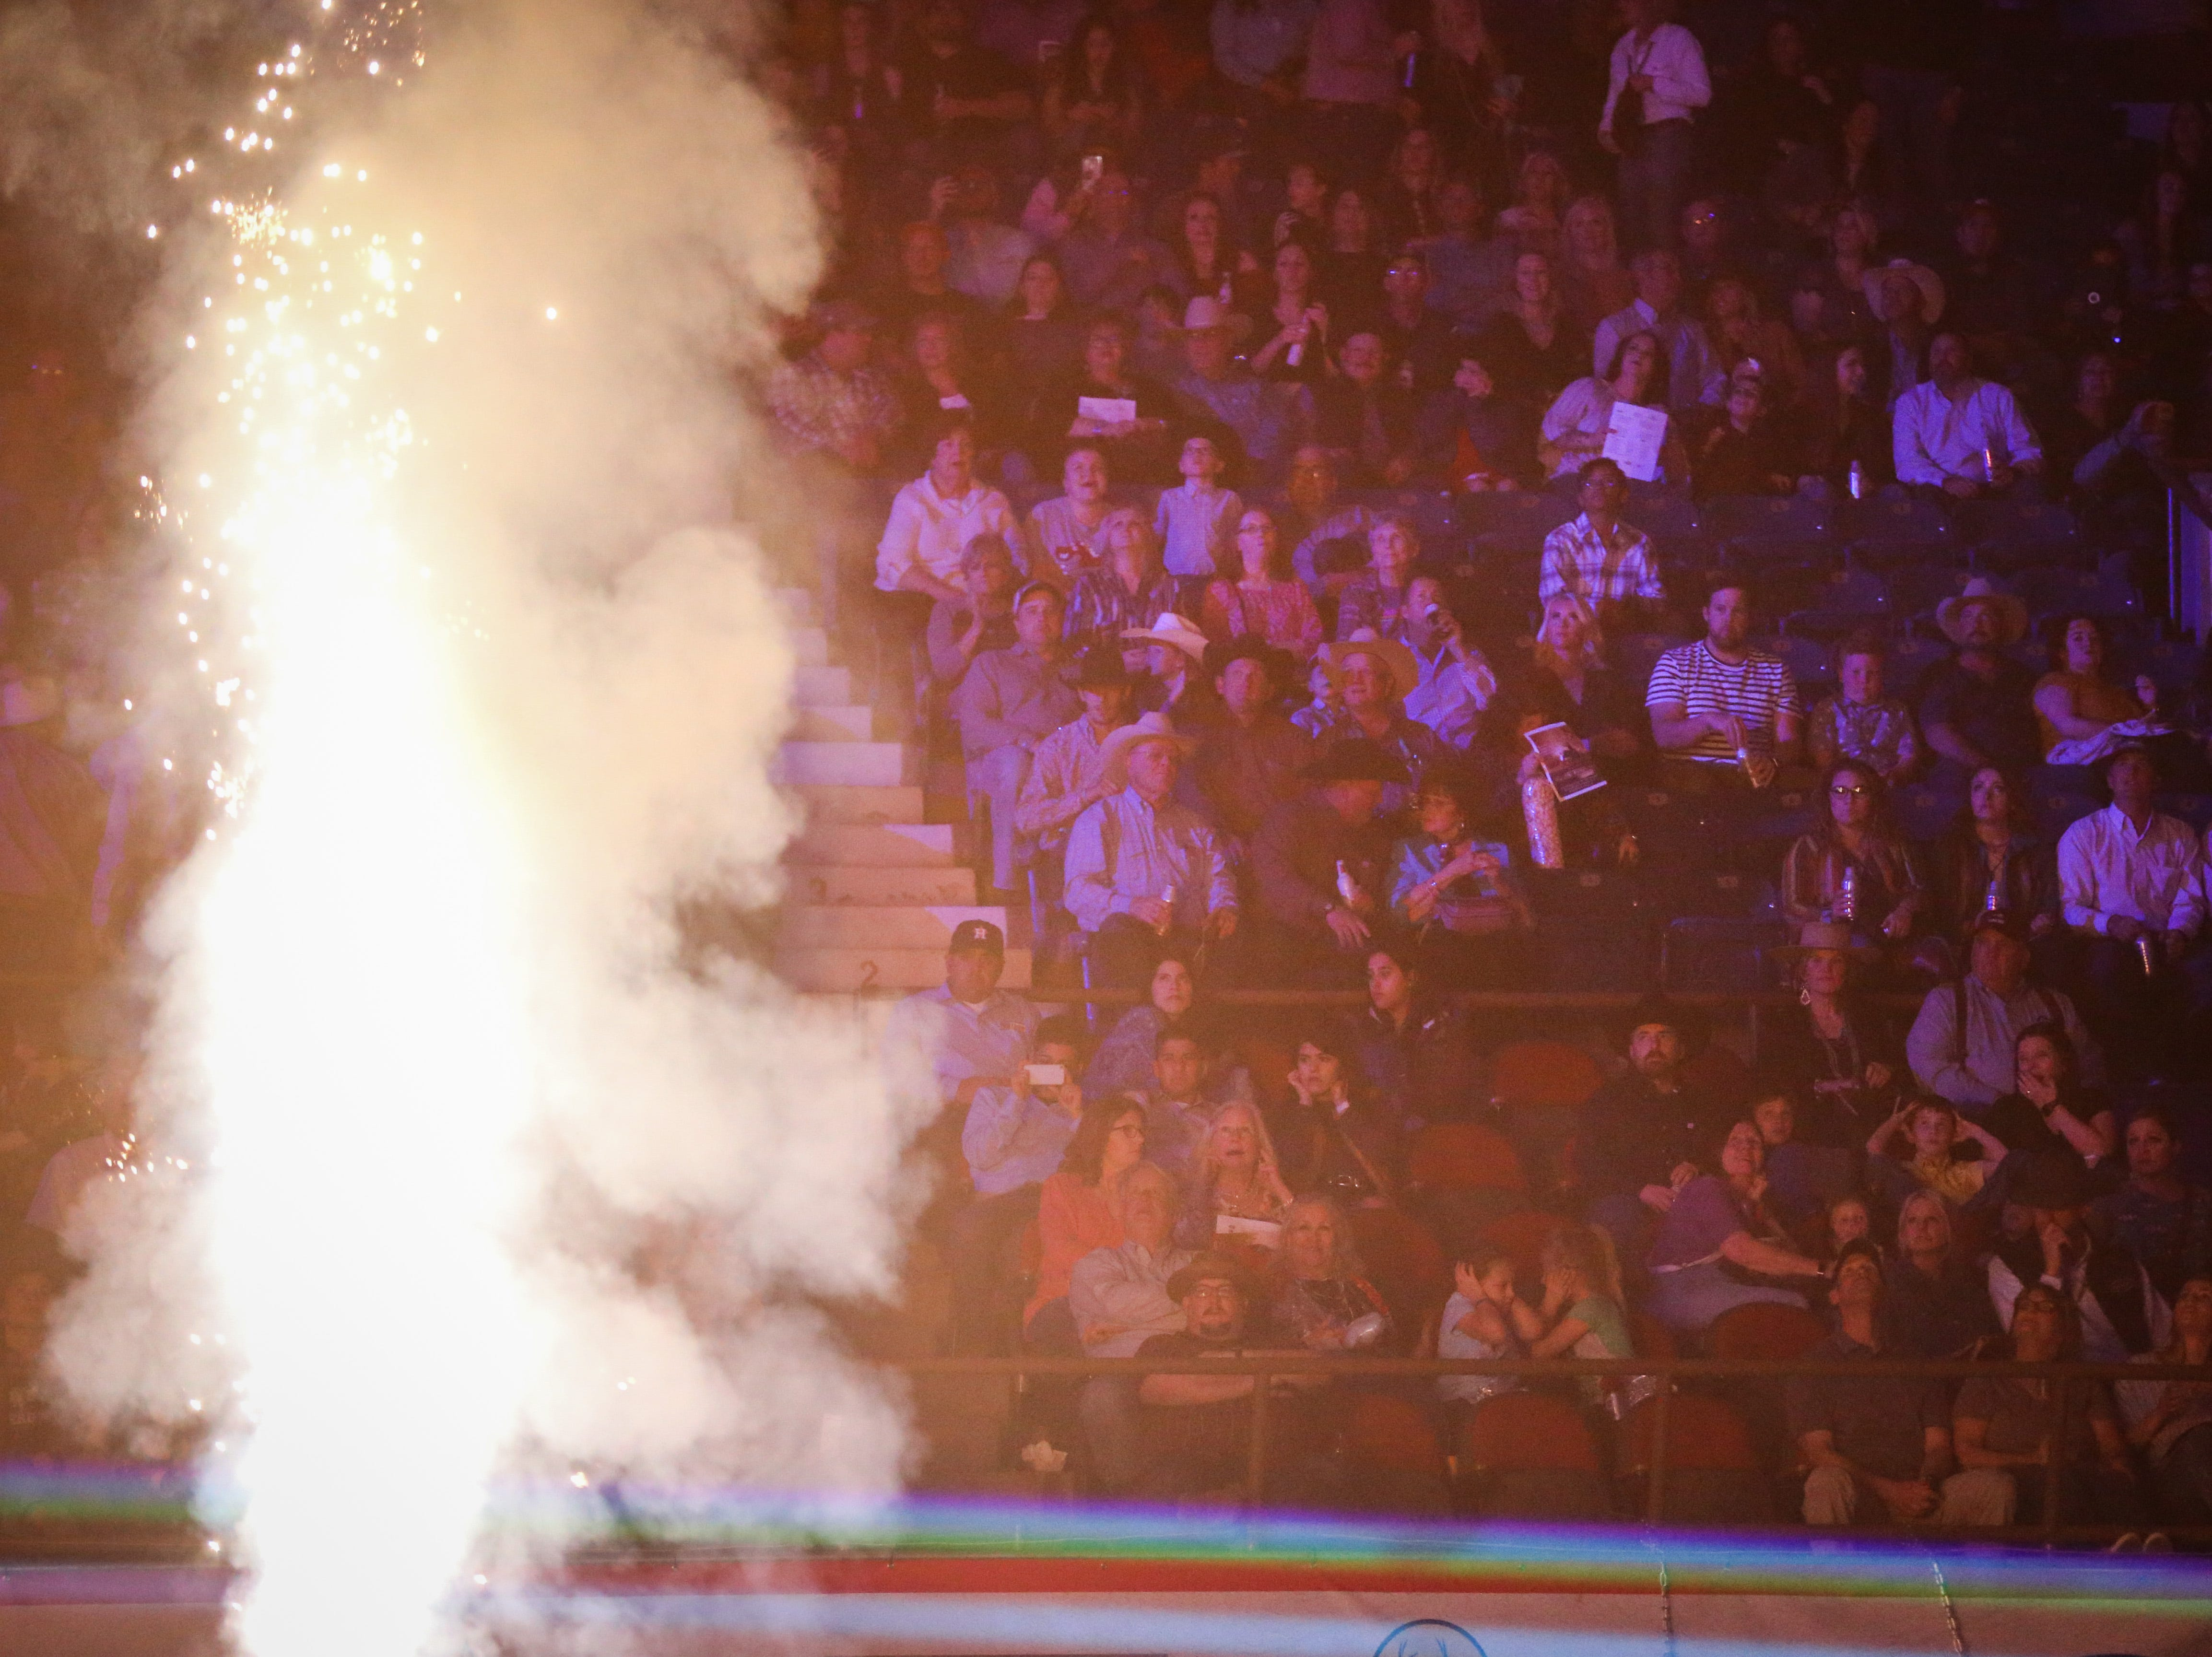 It's a full house during the pyrotechnics show for the finals of the San Angelo Stock Show & Rodeo Friday, Feb. 15, 2019, at Foster Communications Coliseum.